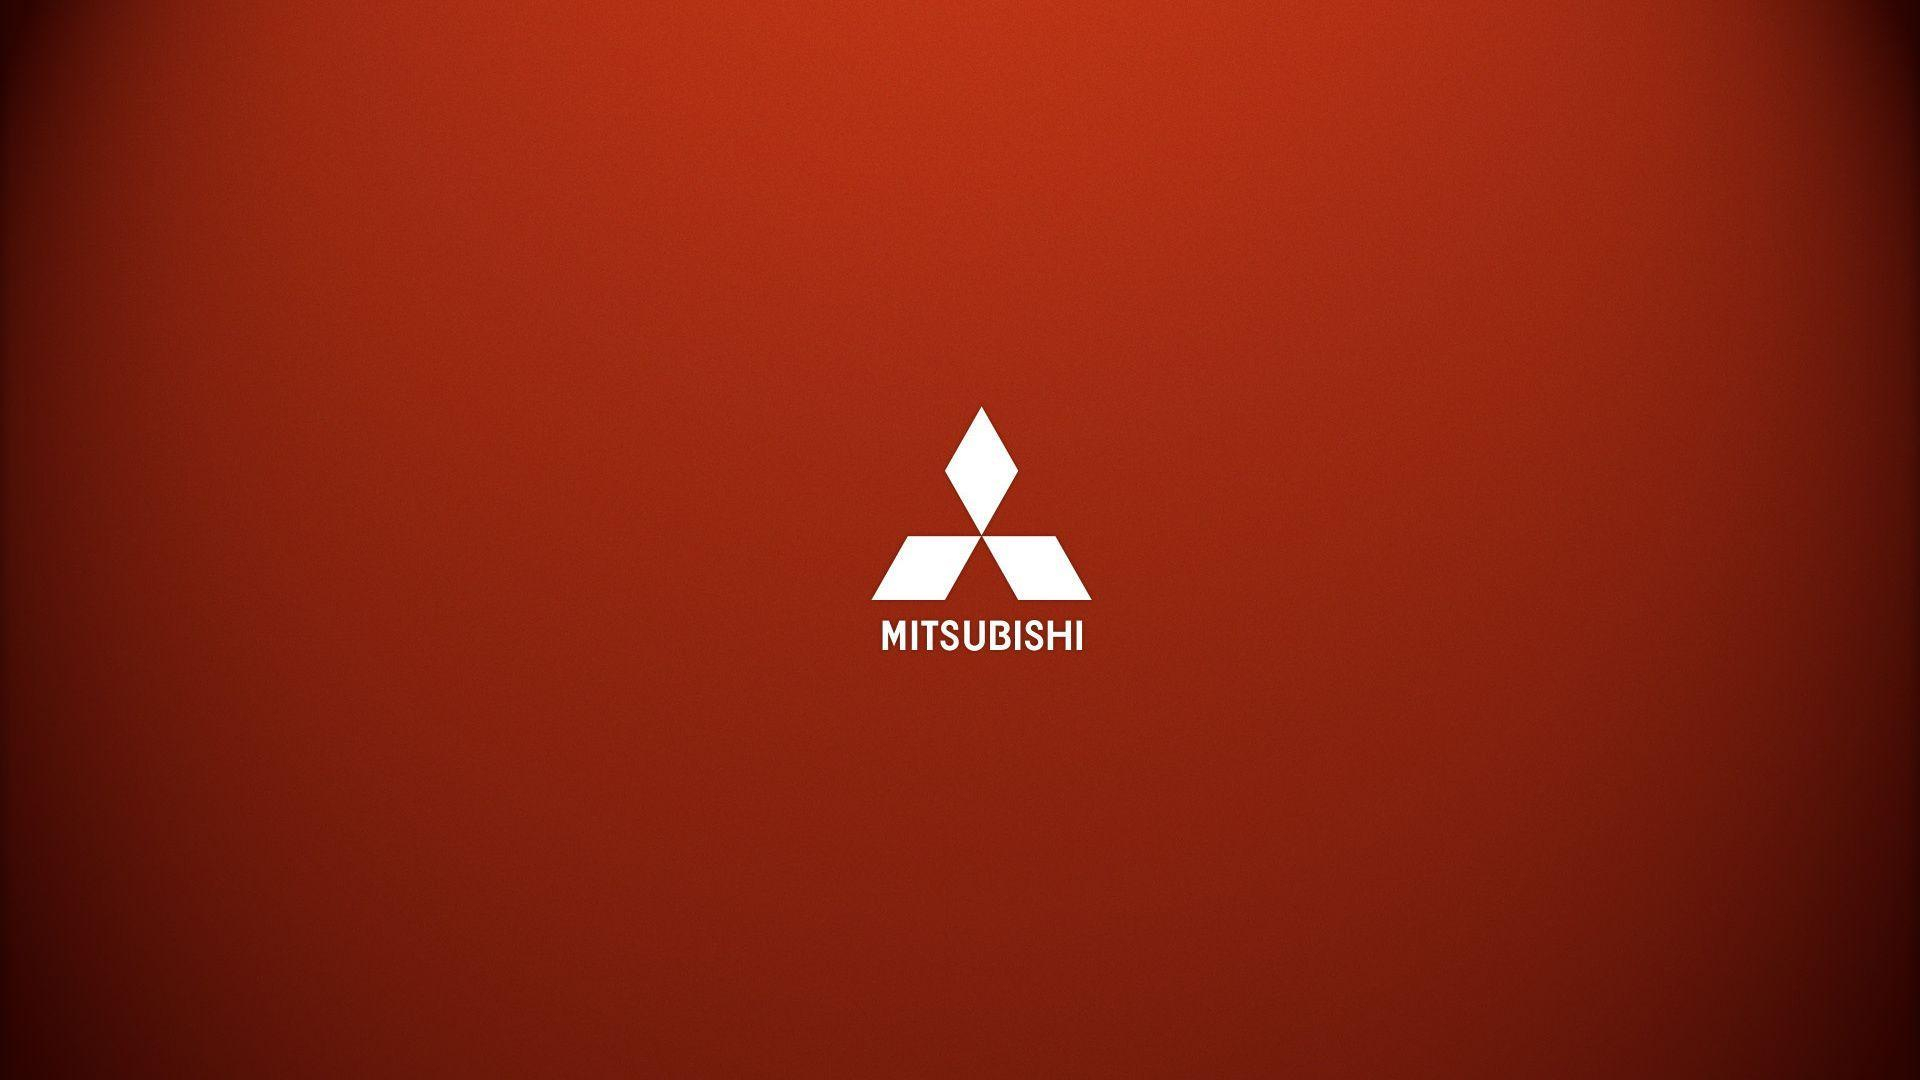 mitsubishi logo wallpapers - wallpaper cave